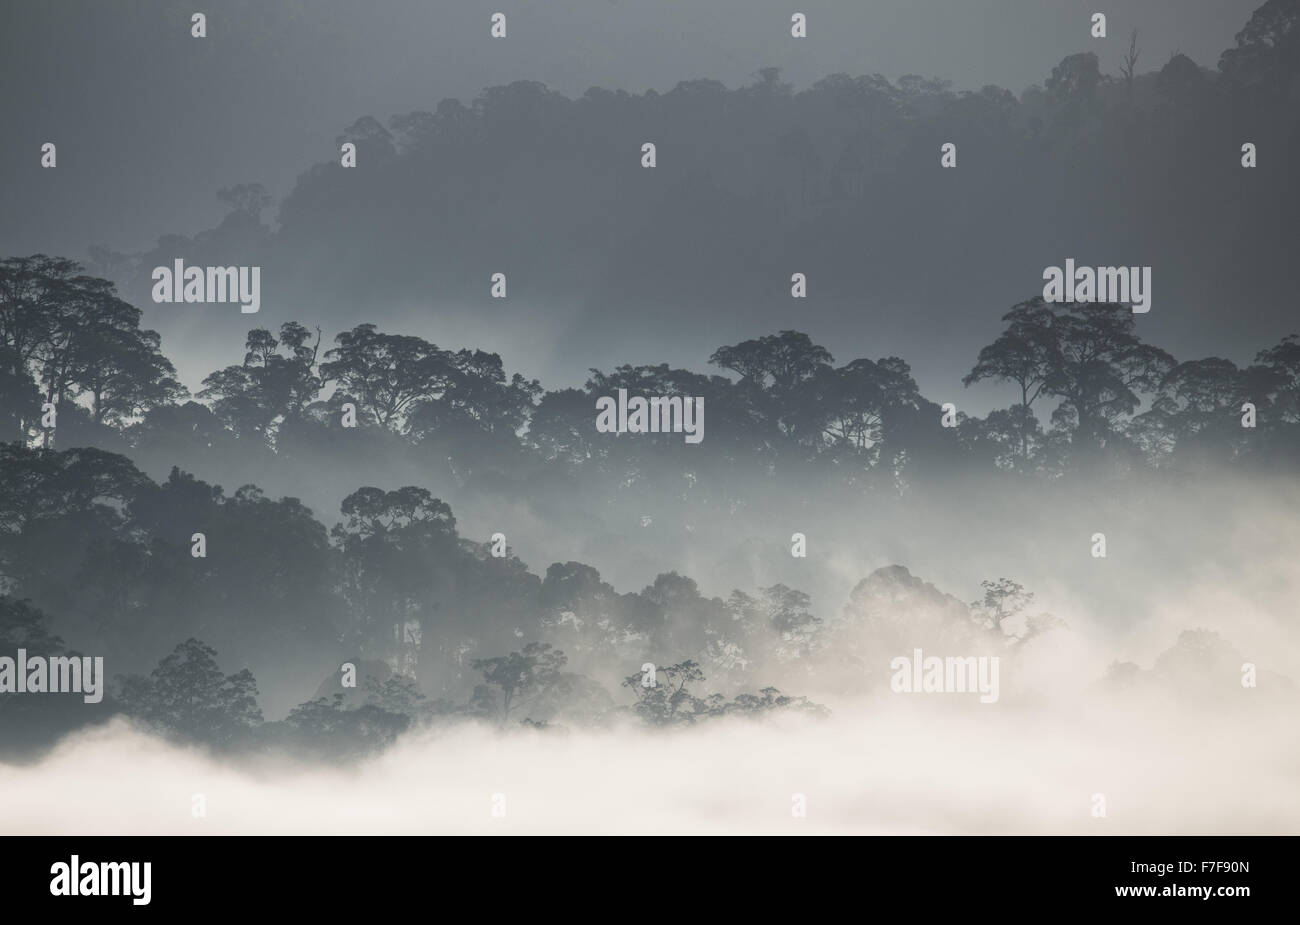 Mist rising at dawn over Danum Valley, Sabah, Malaysia Stock Photo